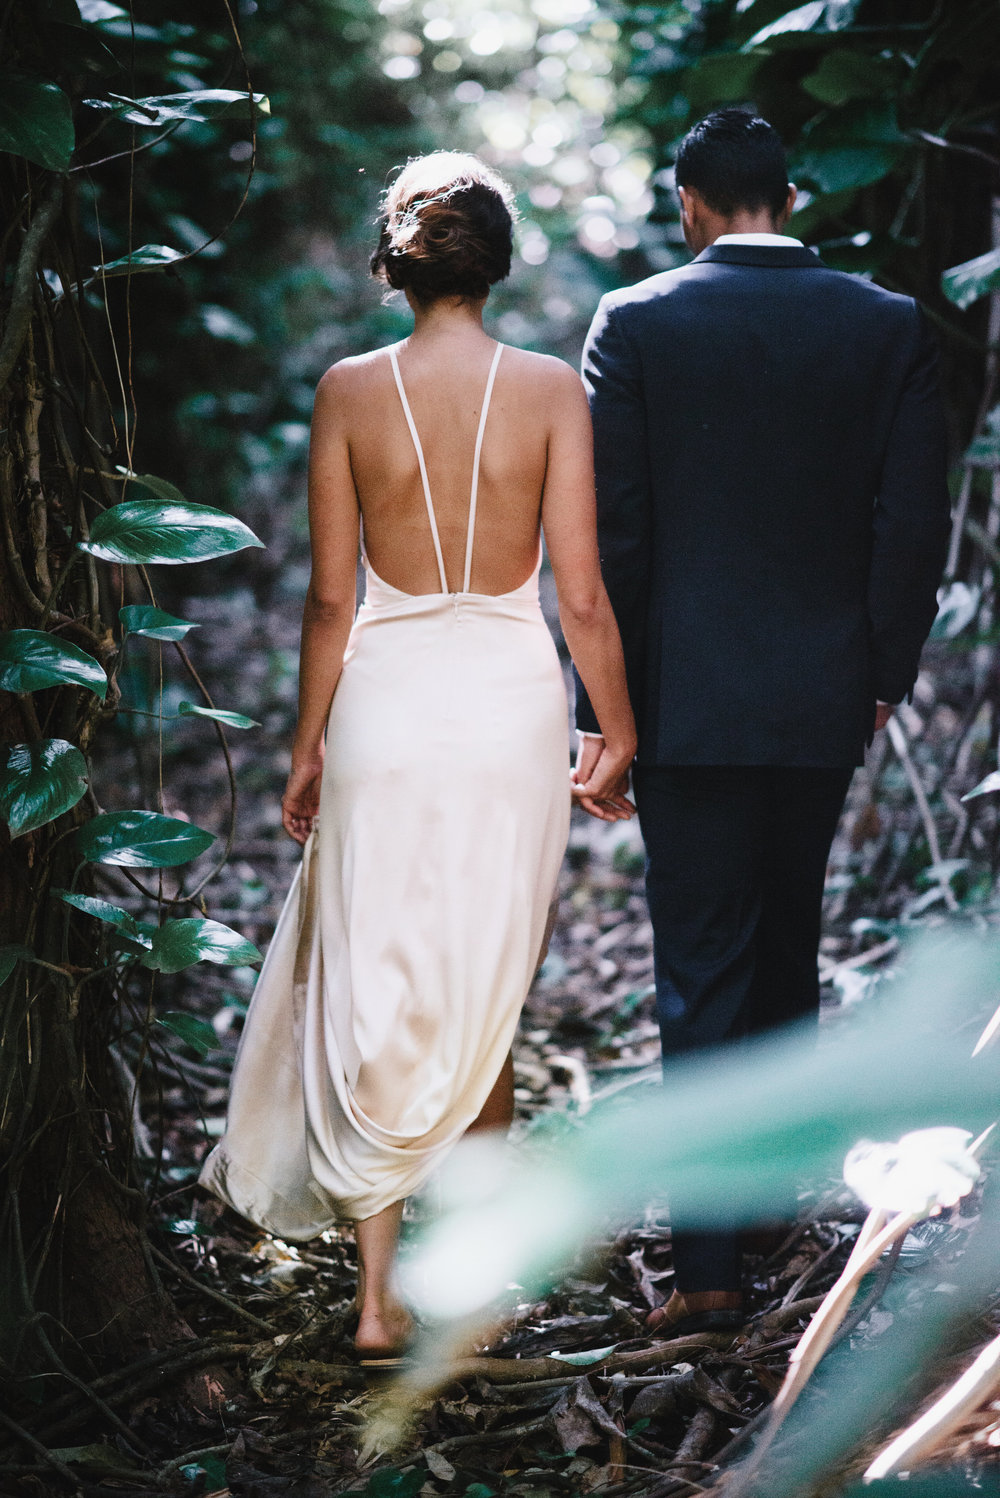 VSCO_Hawaii_Wedding_Photography_June_Cochran_206_7314.jpg